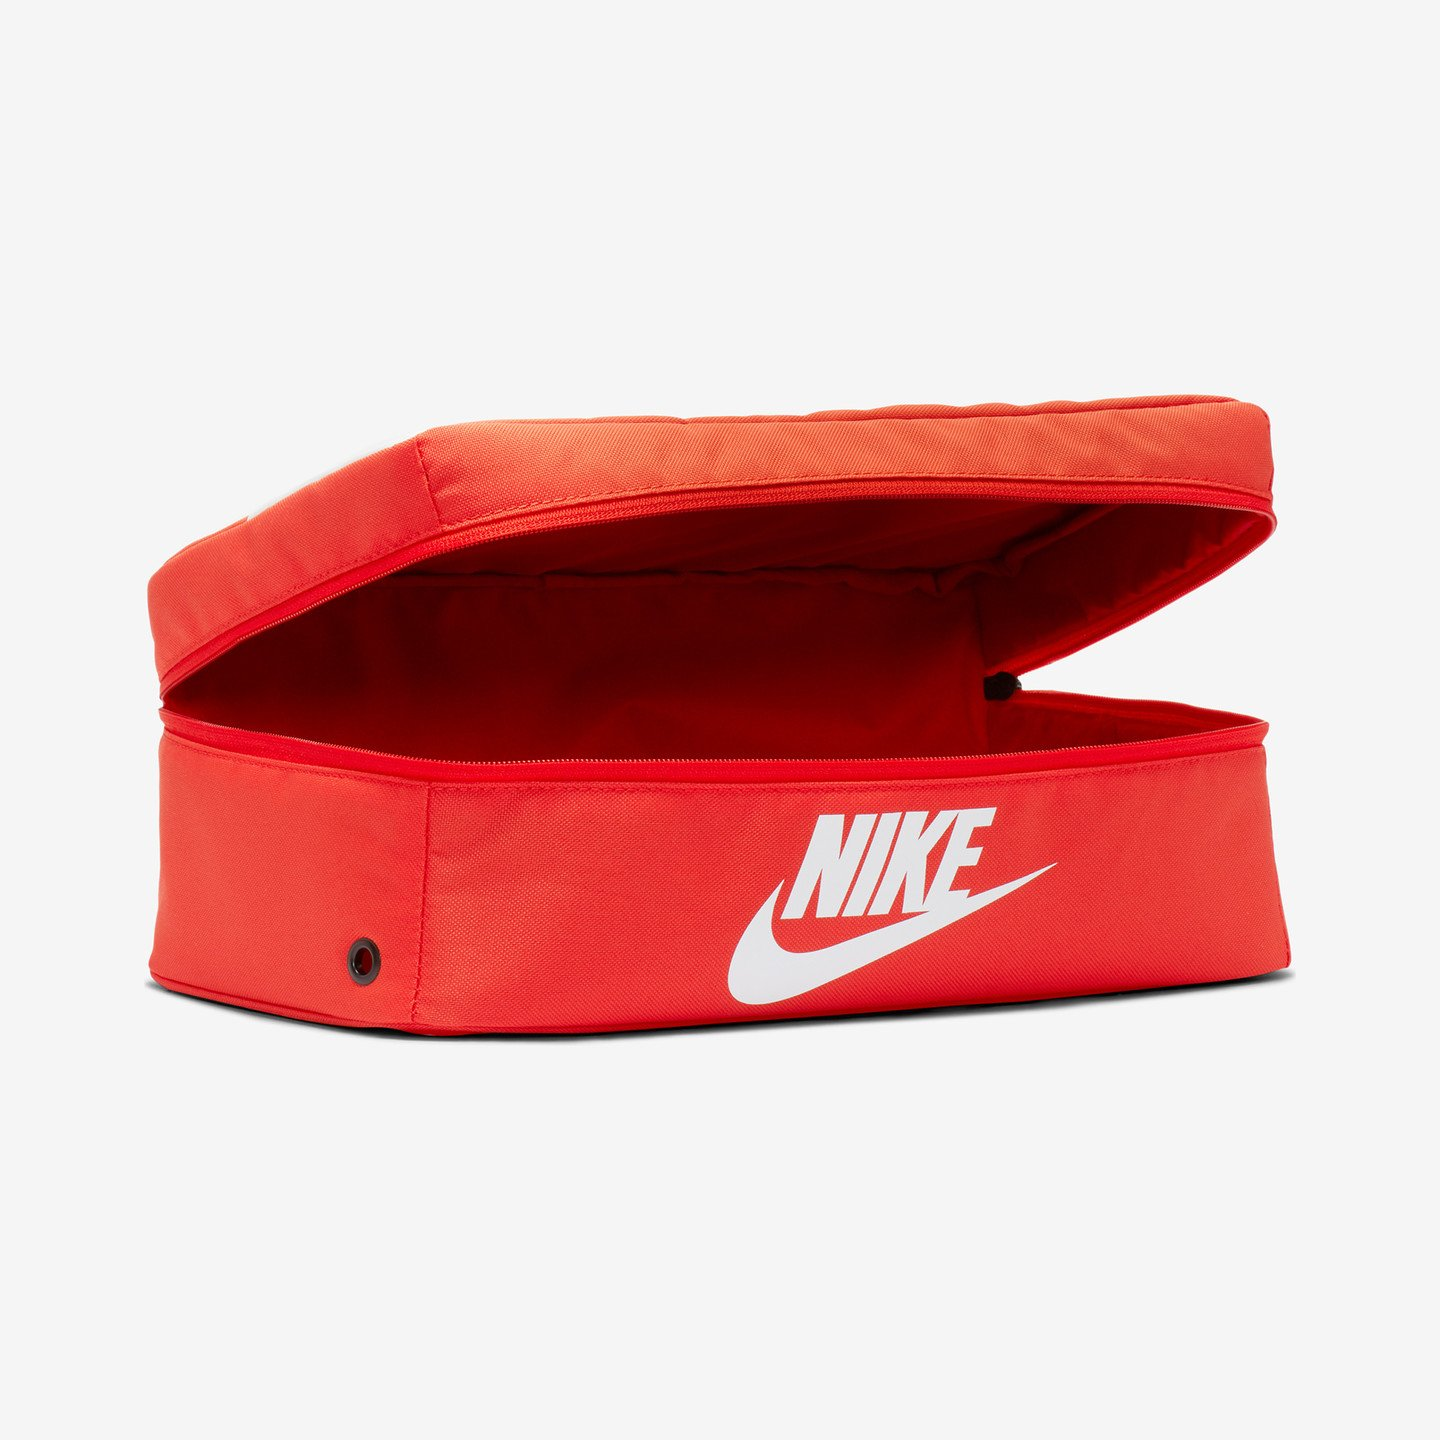 Nike Shoebox Bag Orange / White BA6149-810